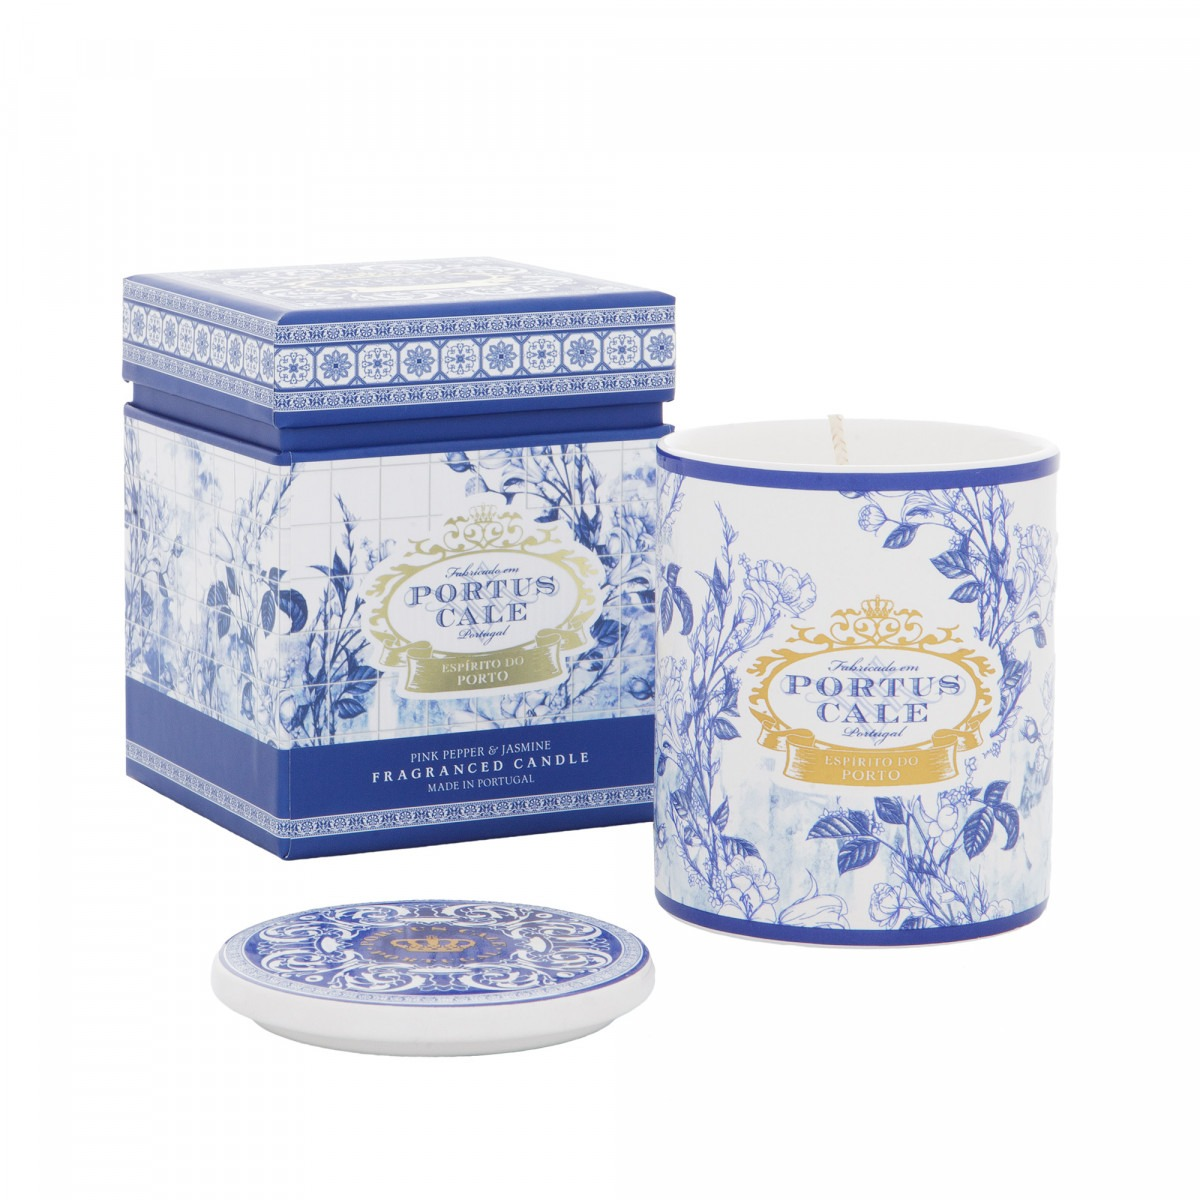 Portus Cale Gold and Blue Candle 215g